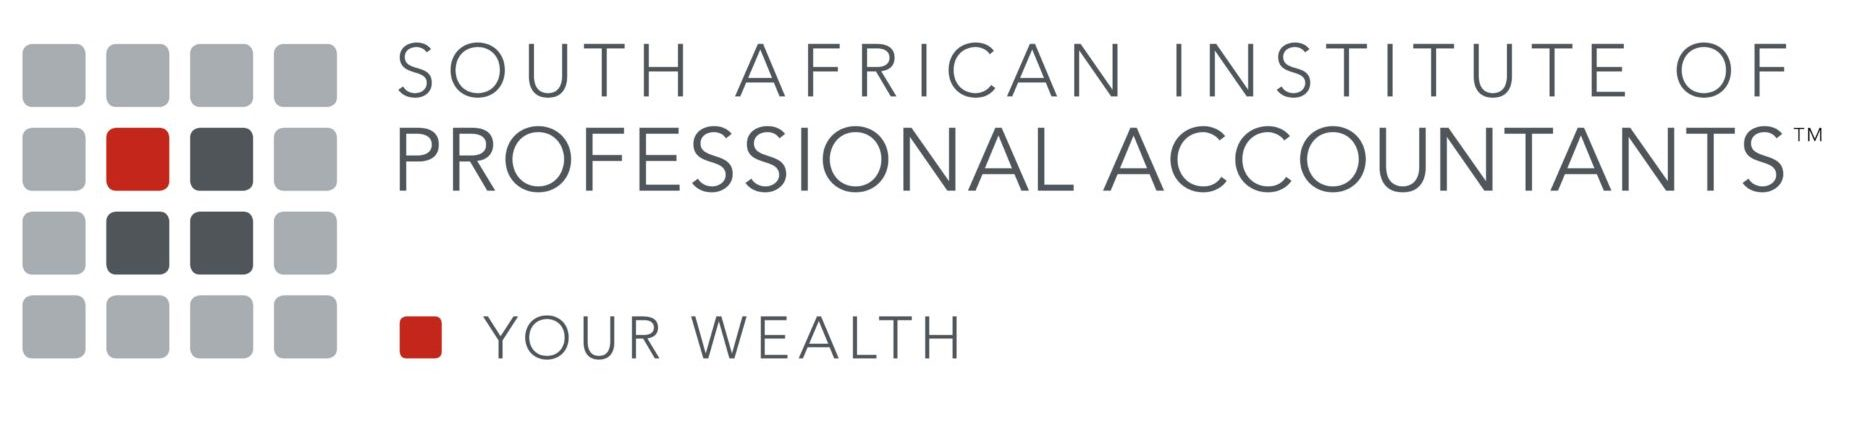 South African Institute of Professional Accountants